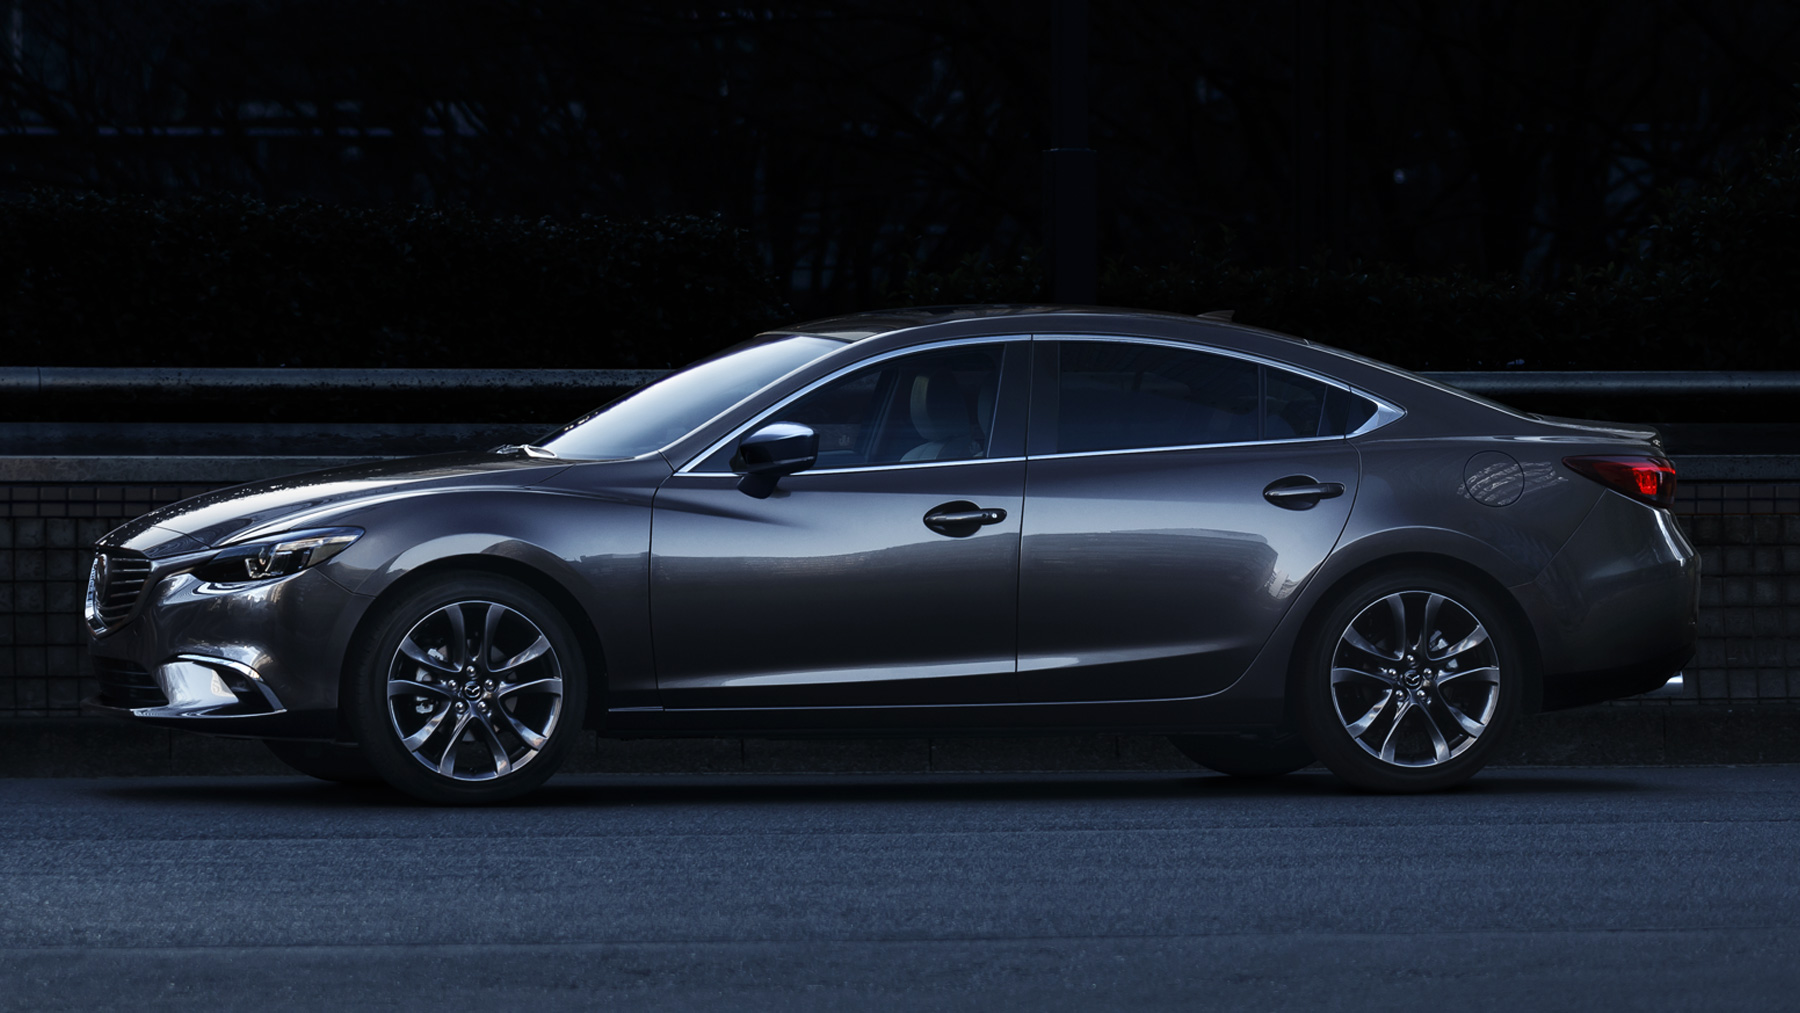 2017 Mazda 6 Mid Size Cars Pictures Amp Videos Mazda Usa